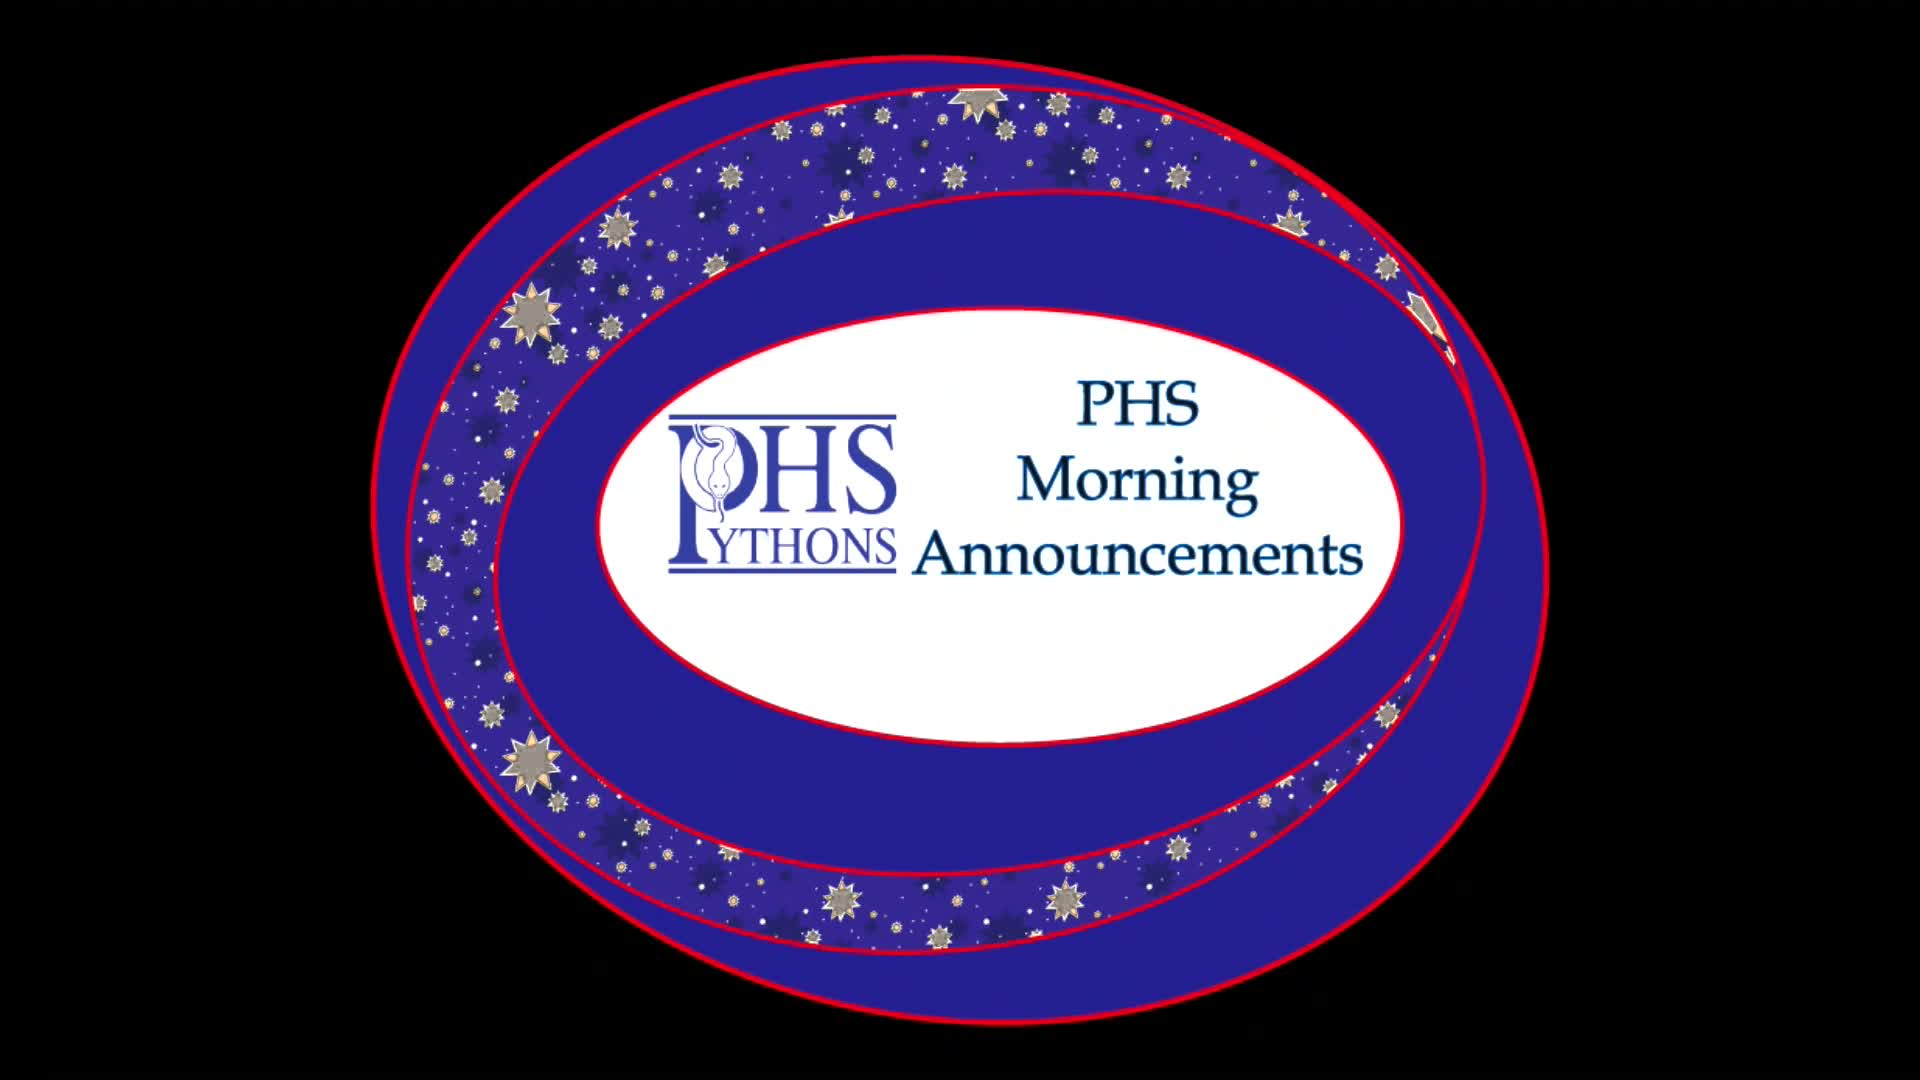 PHS Morning Announcements 4-13-16